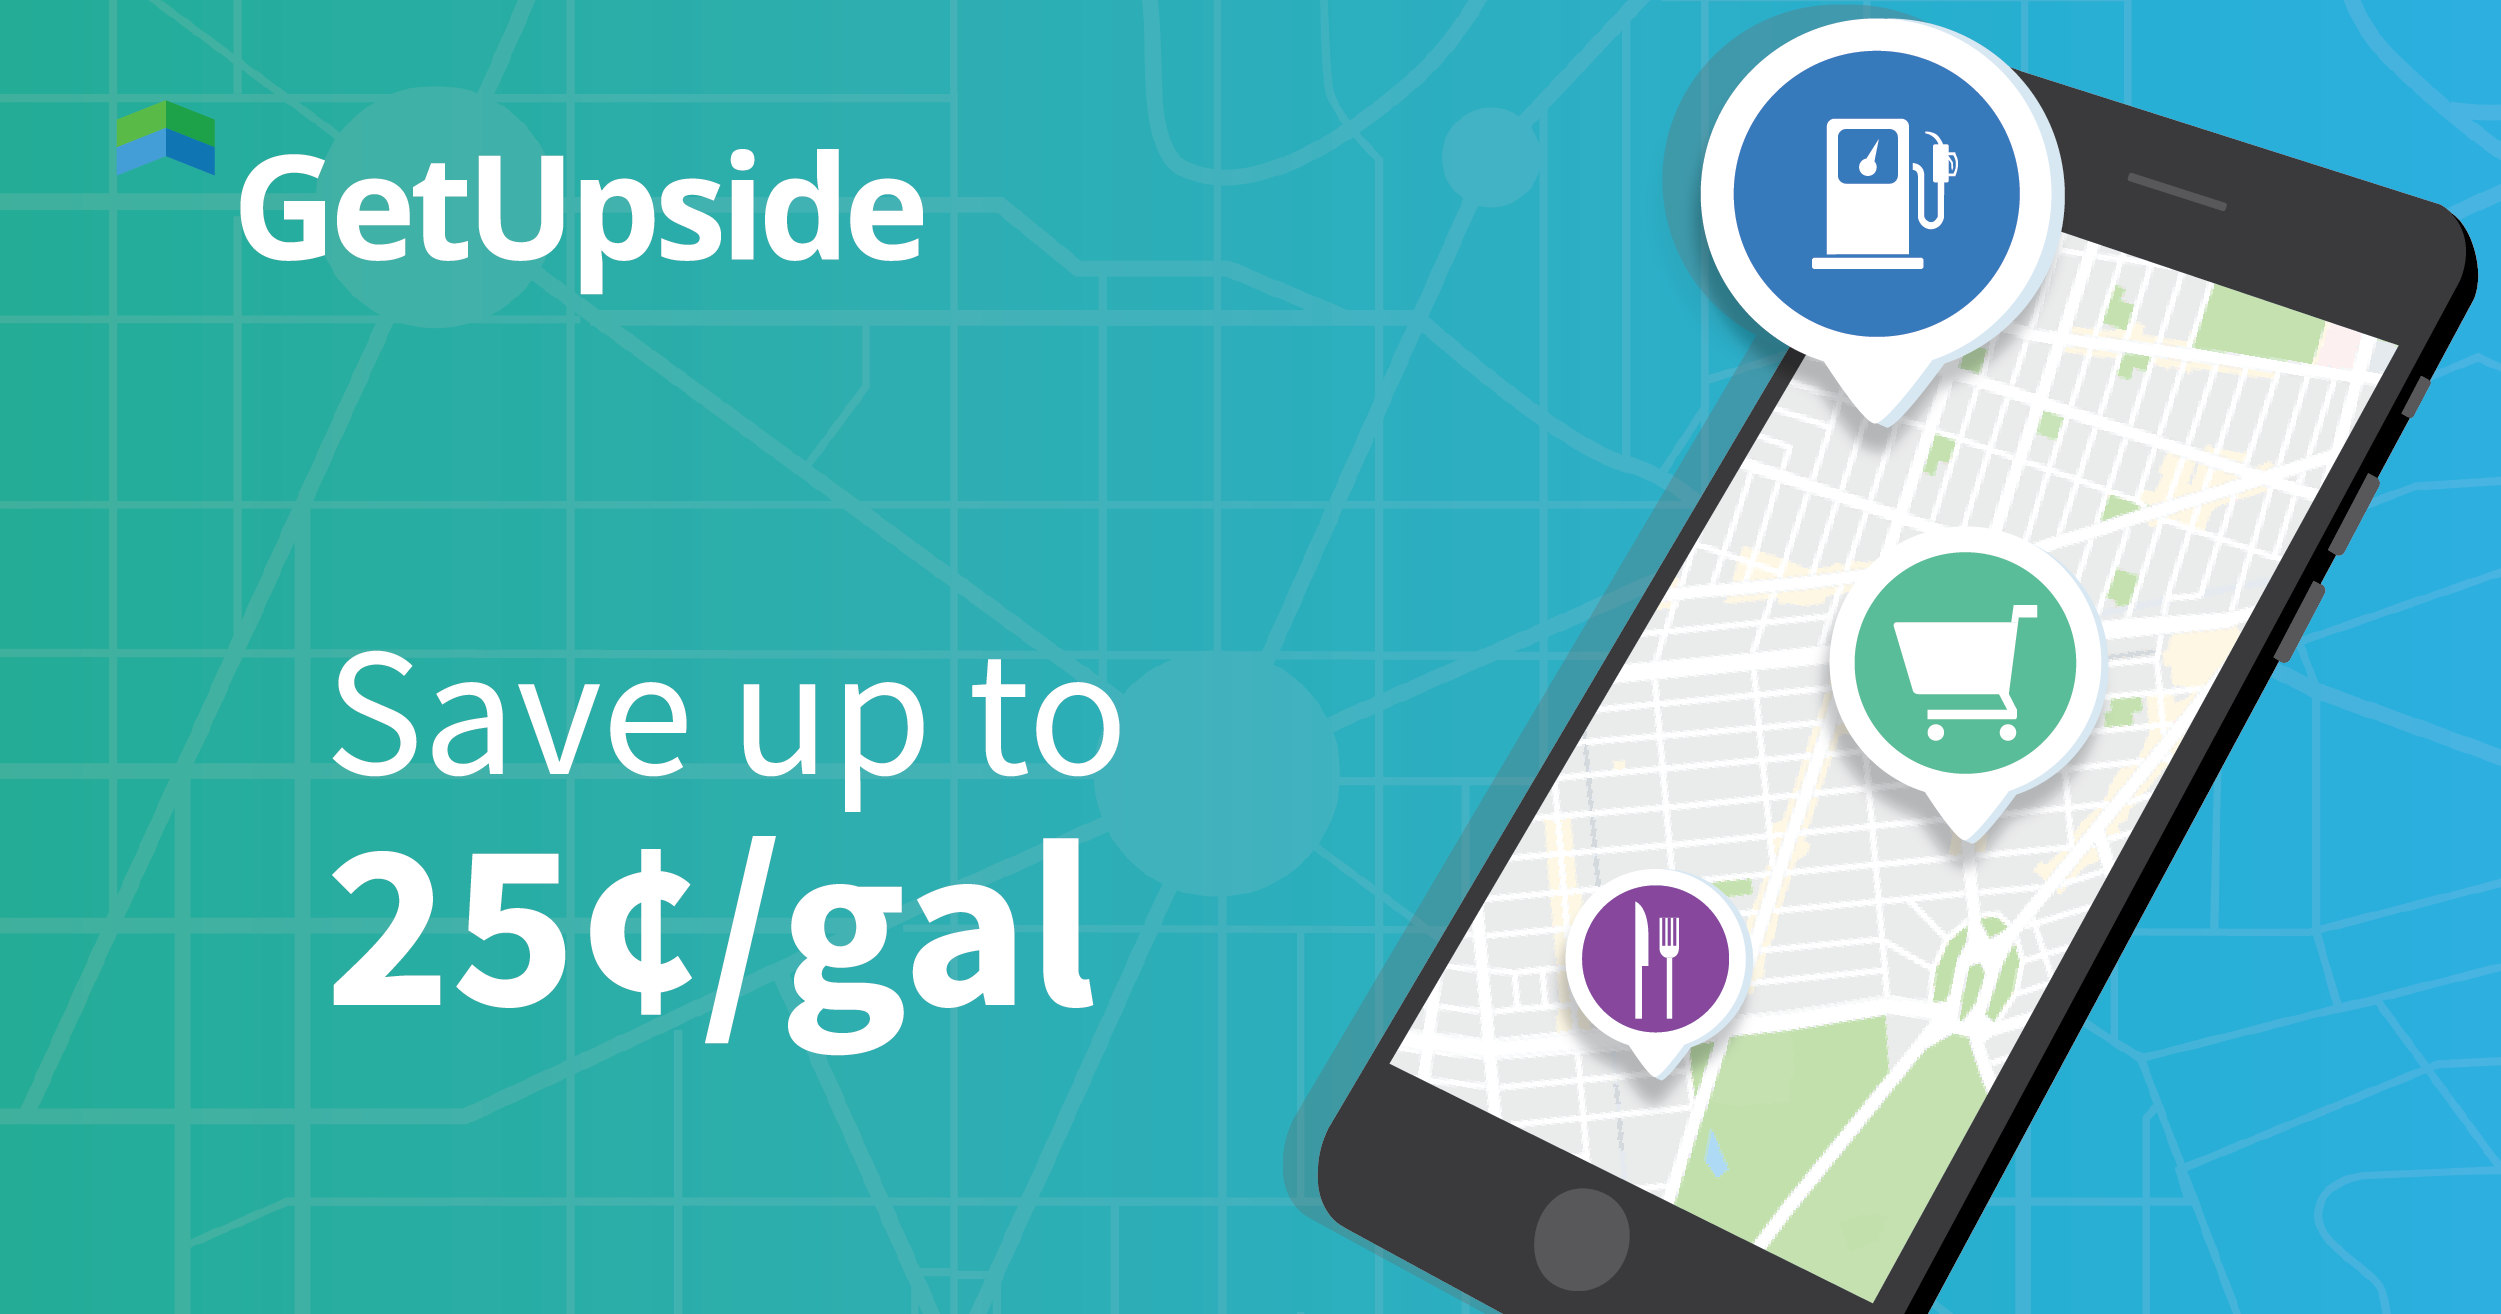 Food Deals & Local Gas Prices | GetUpside Free Cash Back App